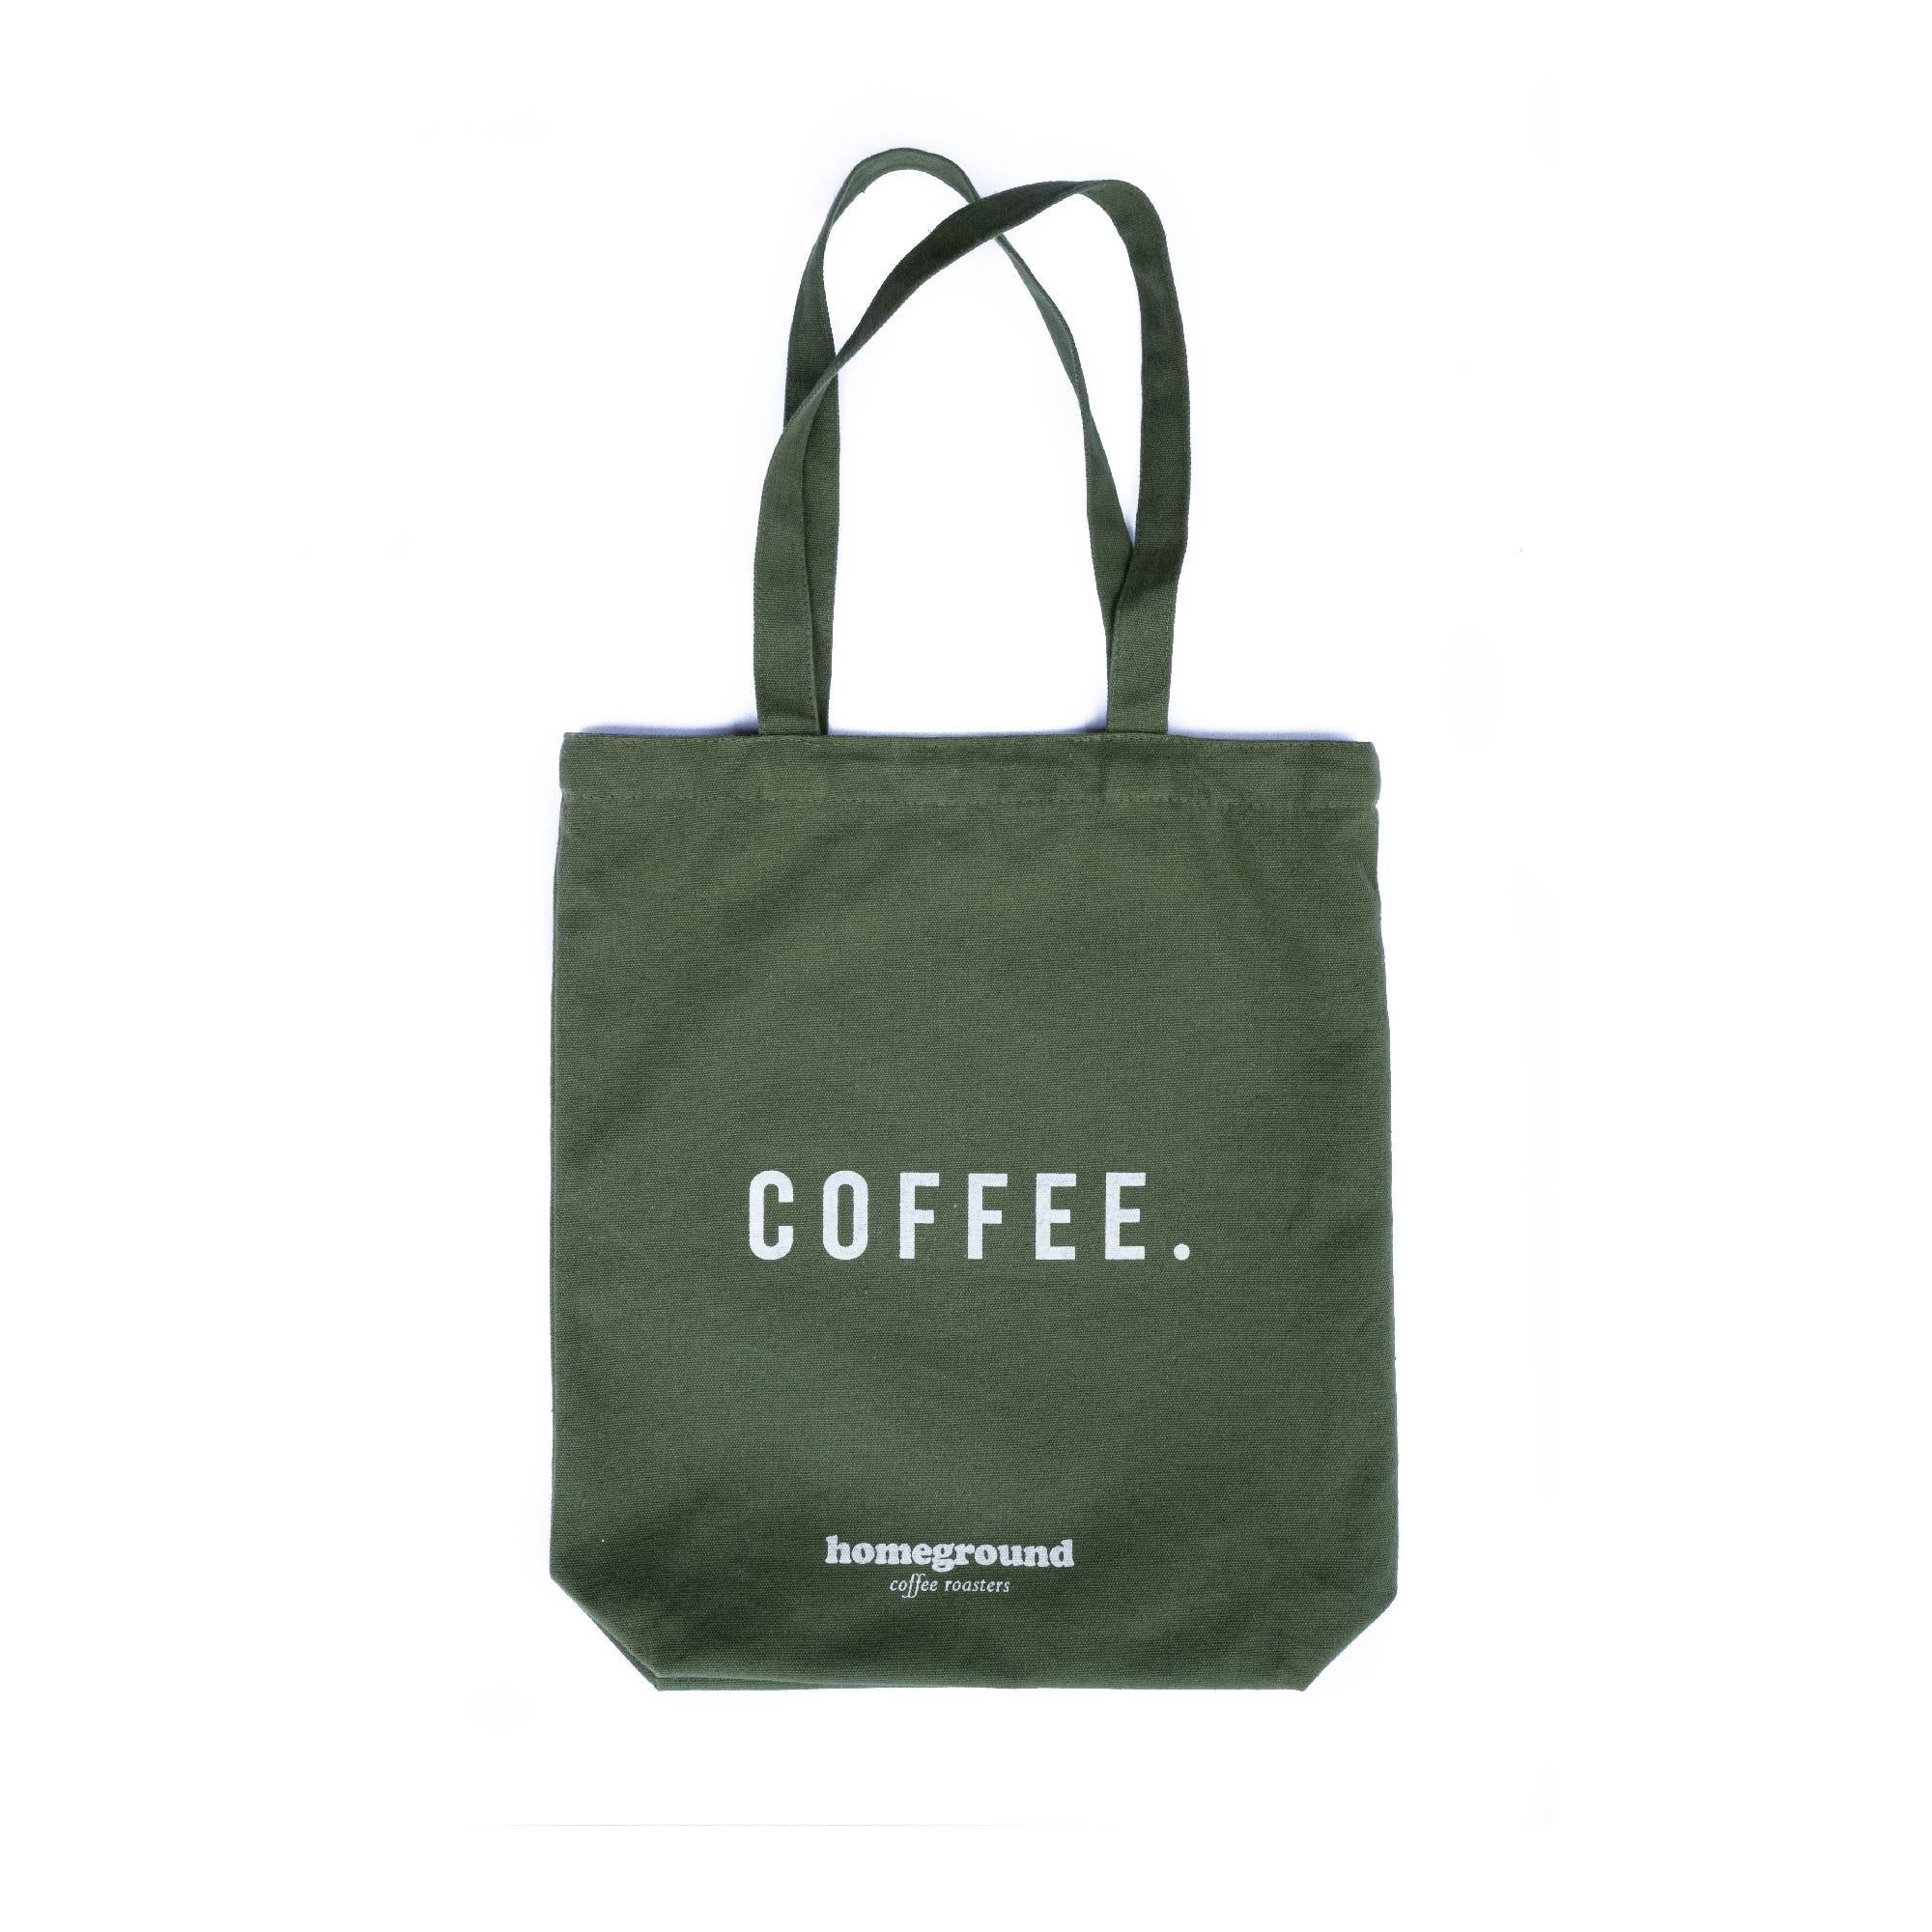 Homeground Tote Bag